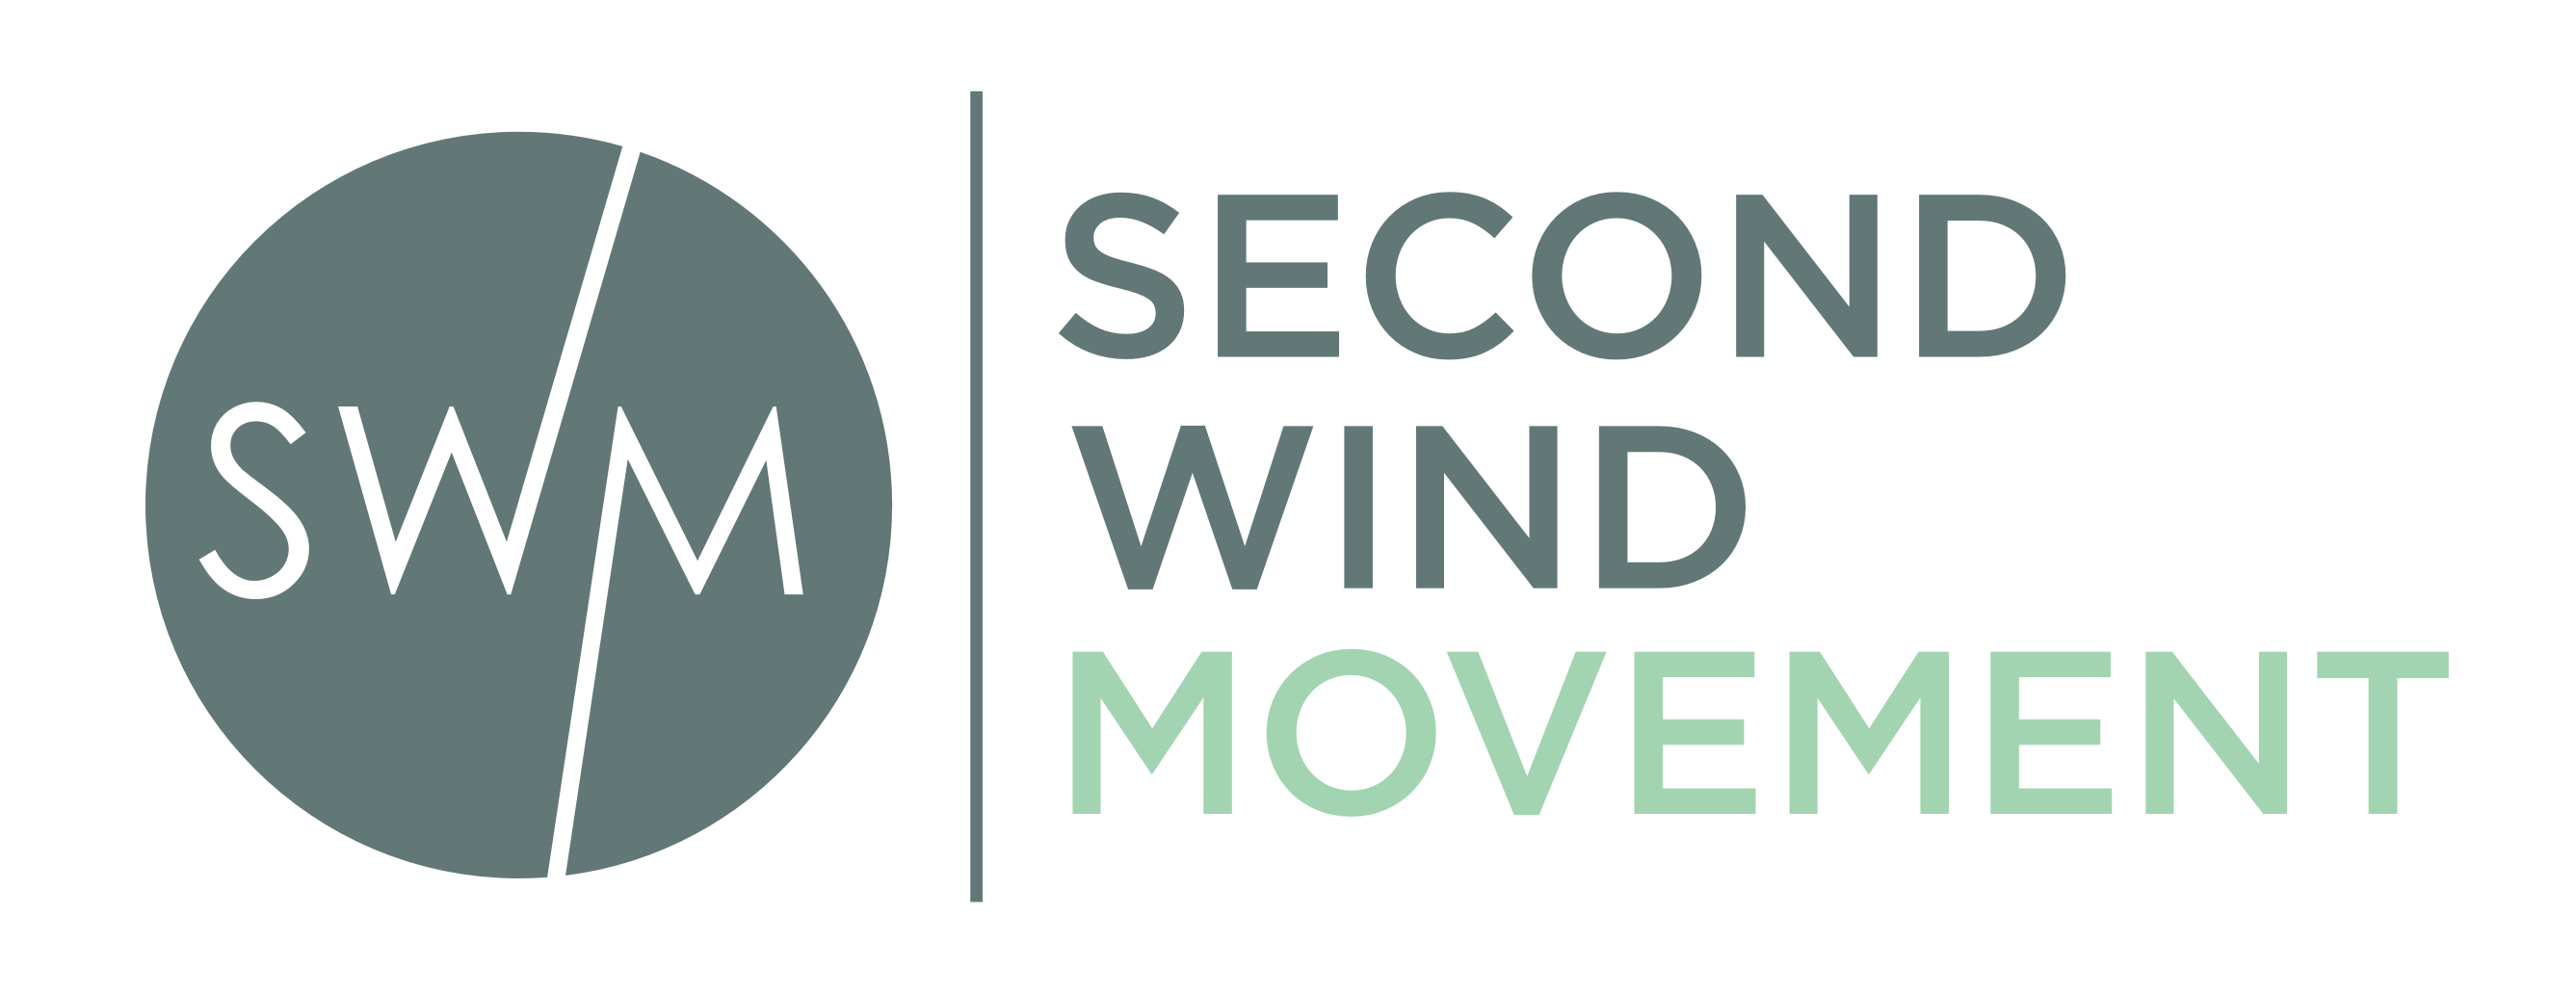 Second Wind Movement